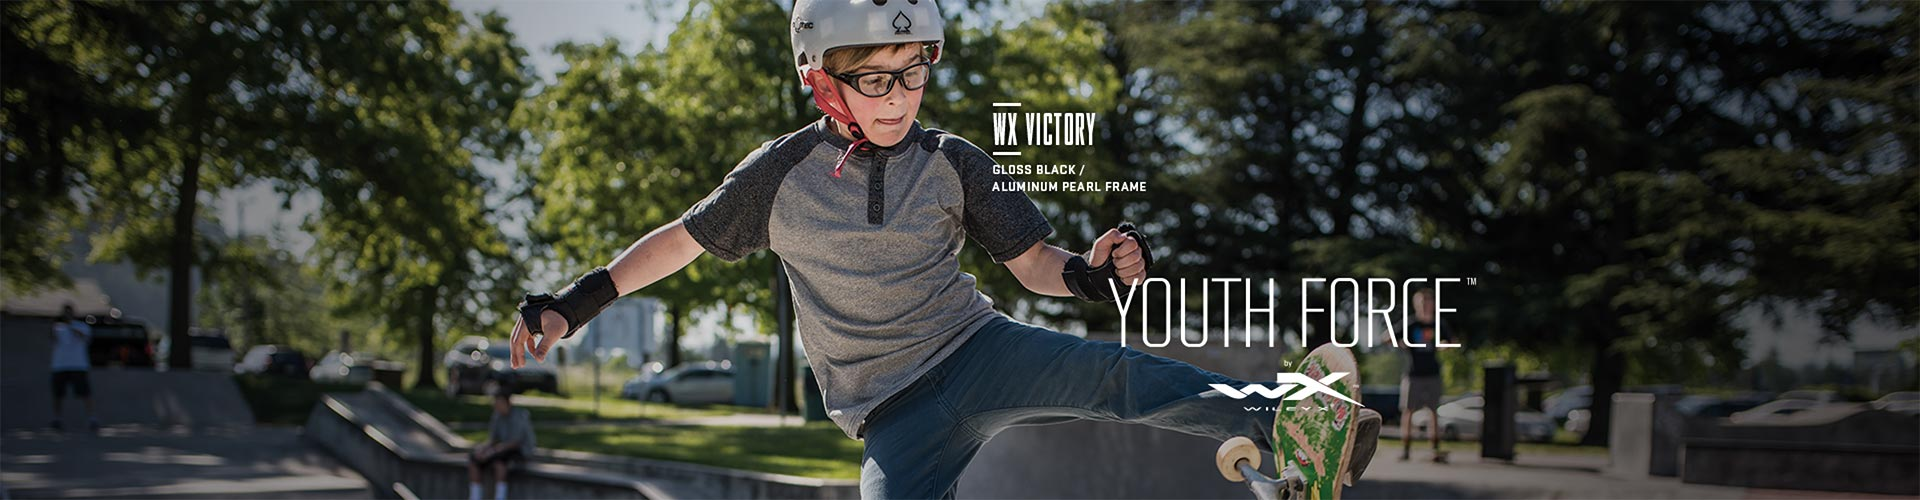 Shop Wiley X Youth Force Prescription Sunglasses - model WX Victory featured